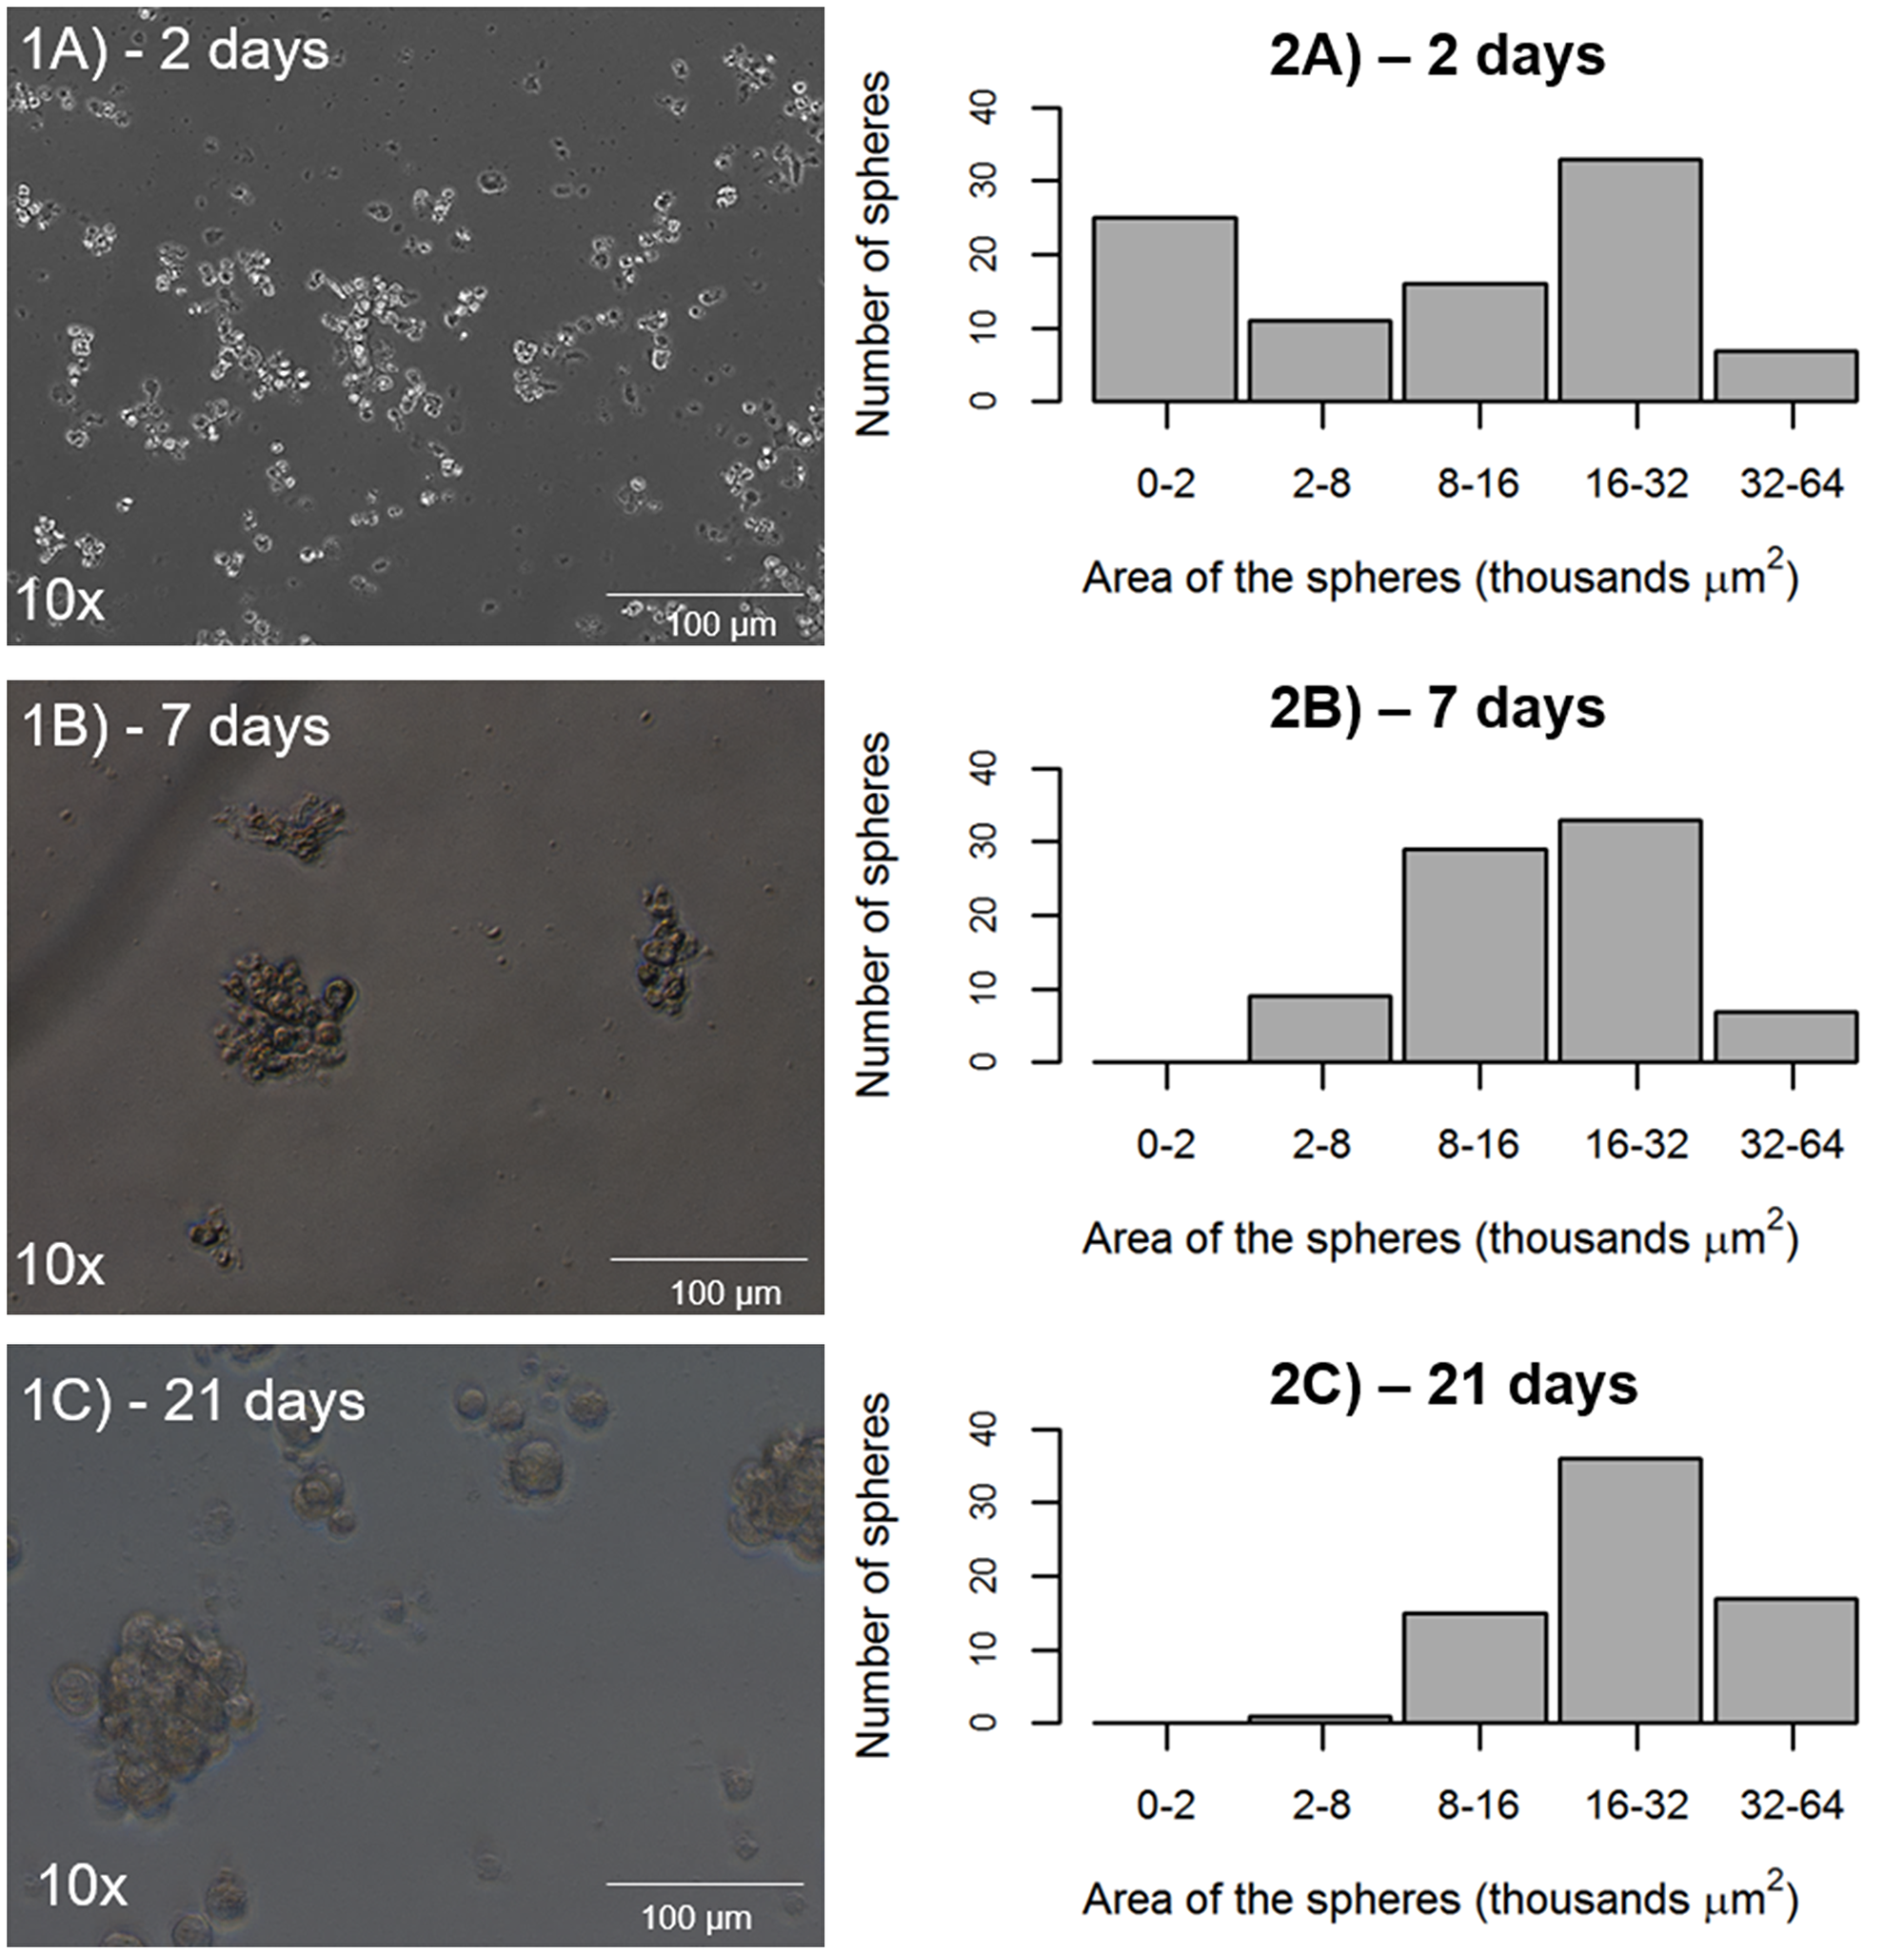 Potential of tumor sphere formation by CD44+/EPCAM+ sorted cells.